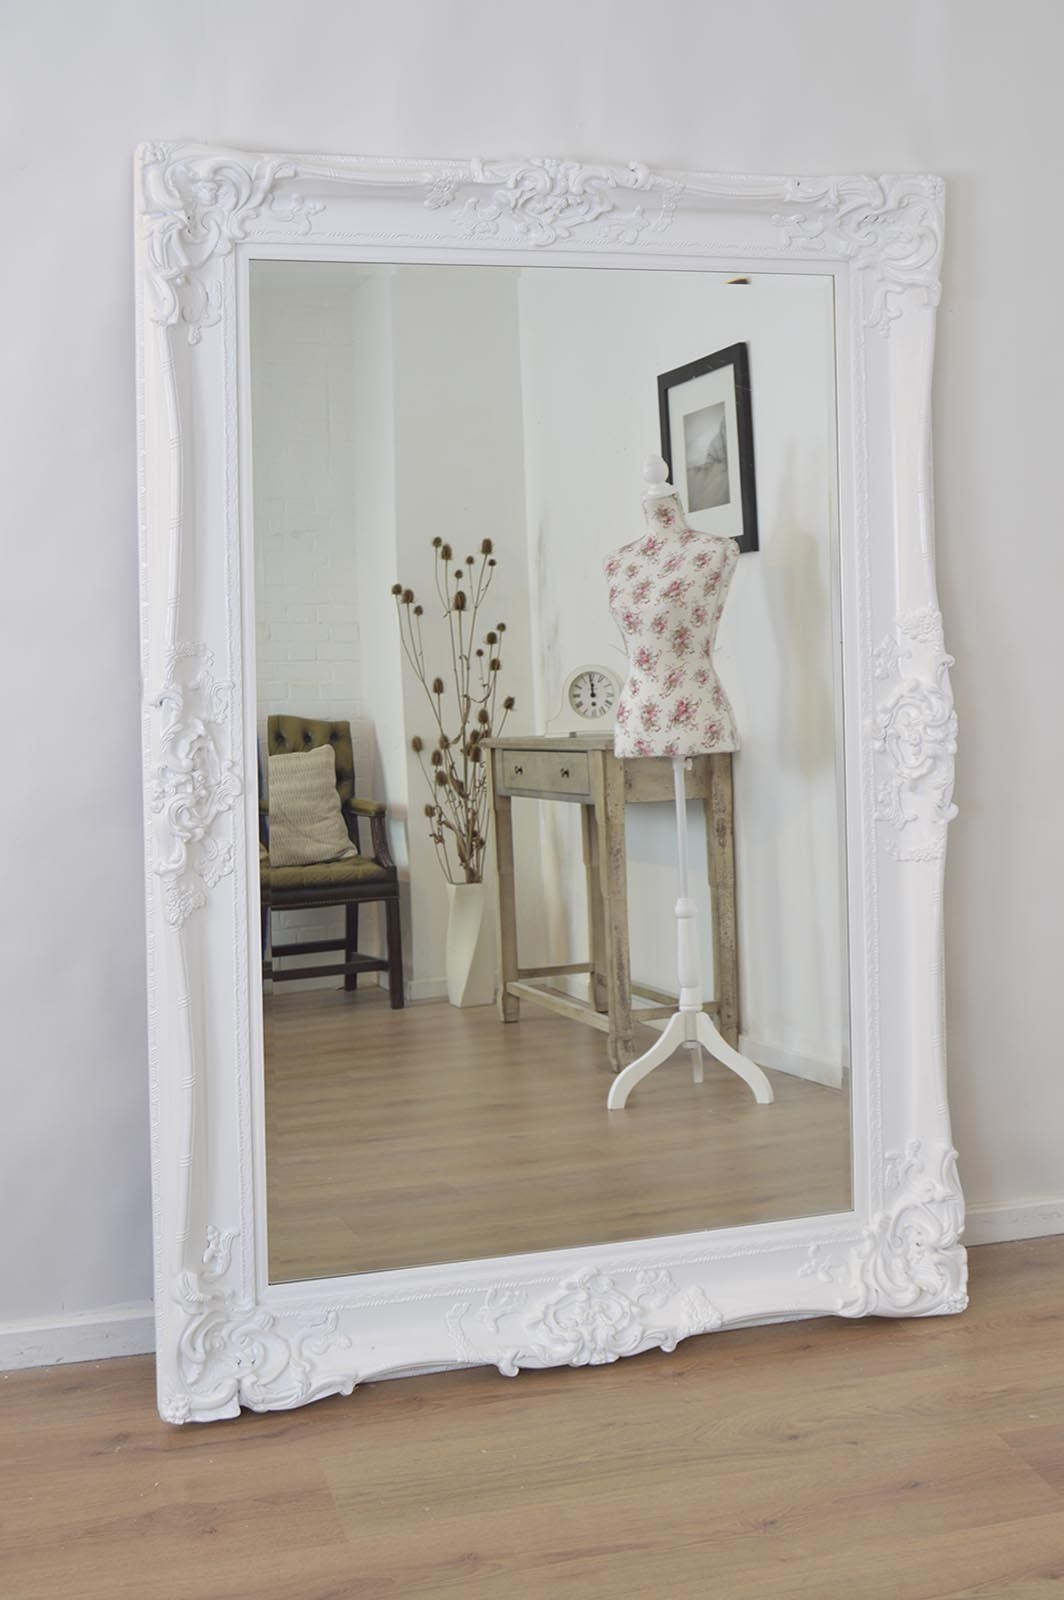 Large White Antique Shab Chic Ornate Wall Mirror 6ft X 4ft Regarding White Antique Mirror (Image 5 of 15)